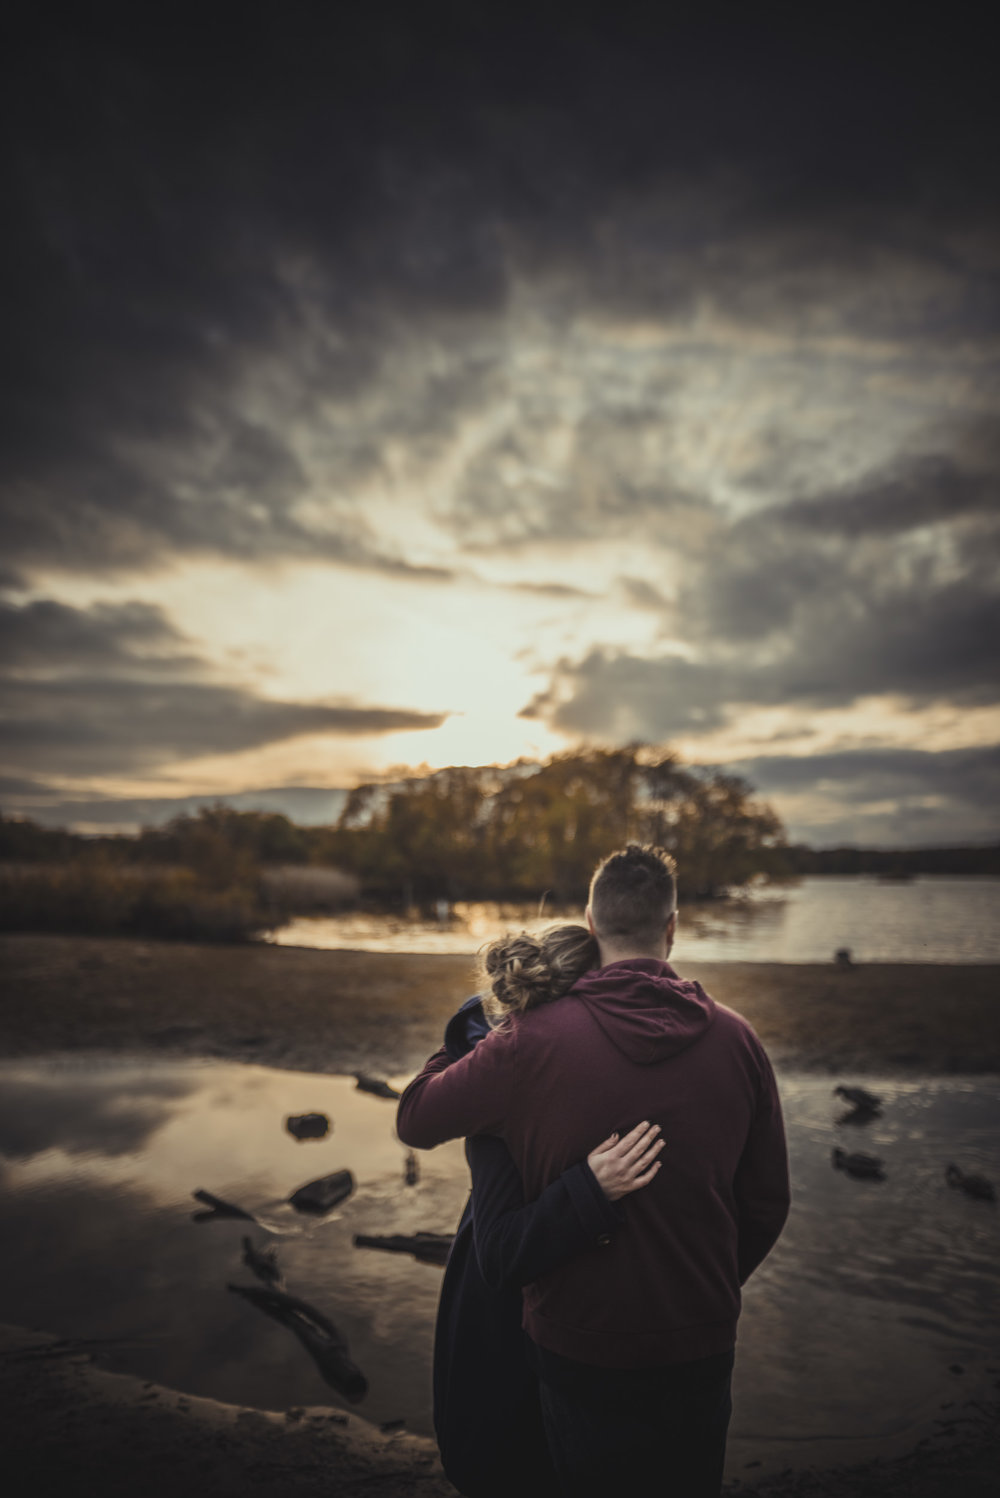 Hannah-and-Sam-Engagement-Sesion-in-Fleet-Pond-Hampshire-Manu-Mendoza-Wedding-Photography-081.jpg